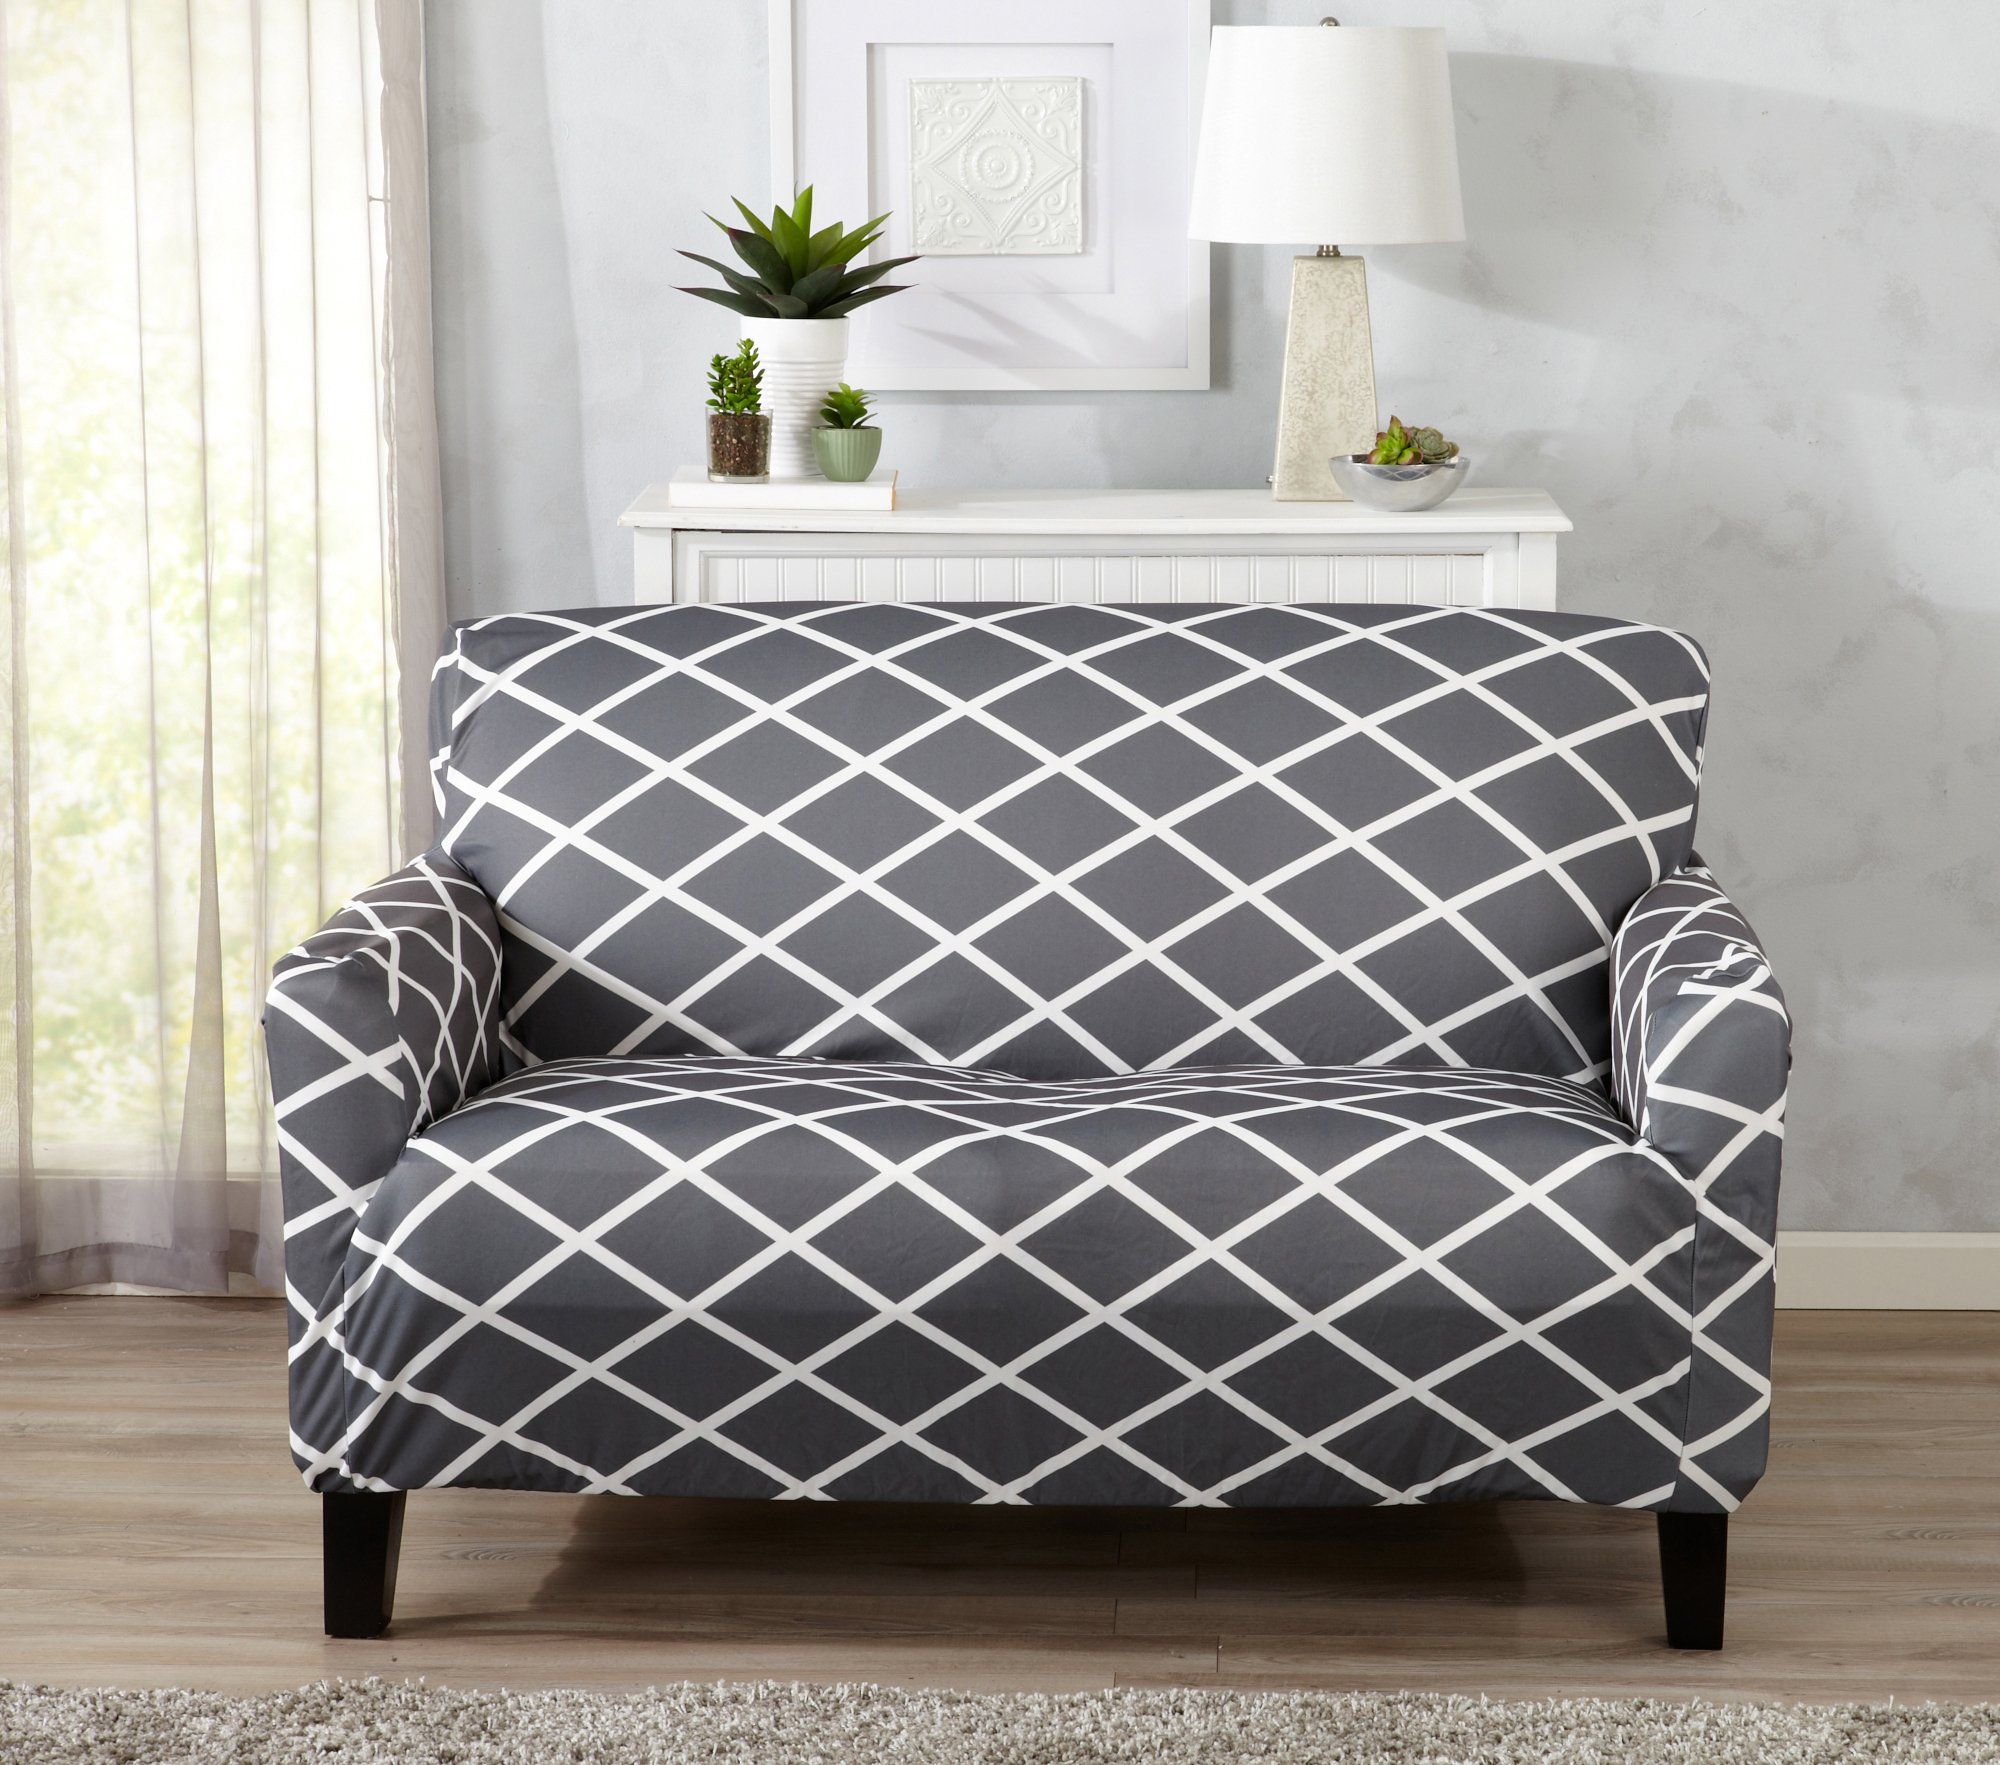 Great Bay Home Strapless Stretch Printed Slipcover Loveseat Cover, Stain and Spill Resistant. Tori Collection by (Love Seat - Grey)